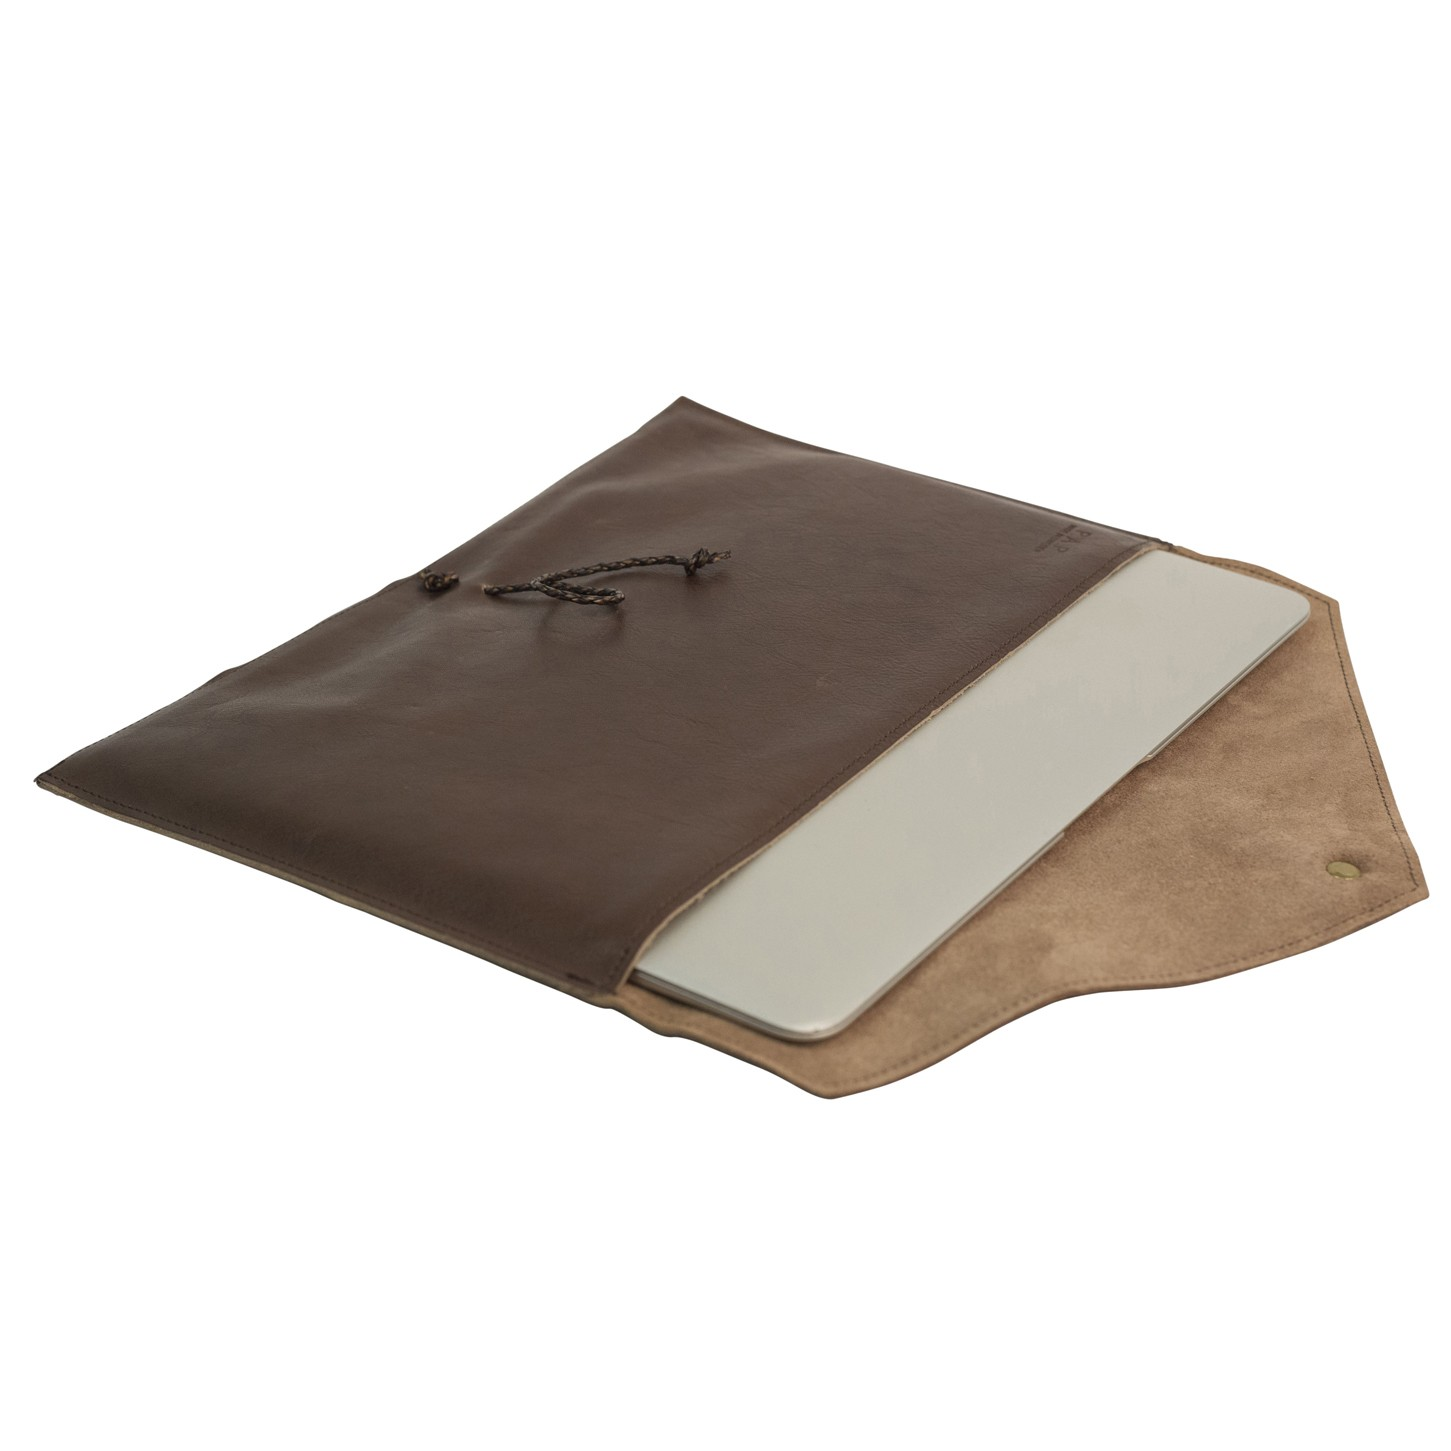 "P.A.P. Kungssten Laptop Cover 13"" - Brown"